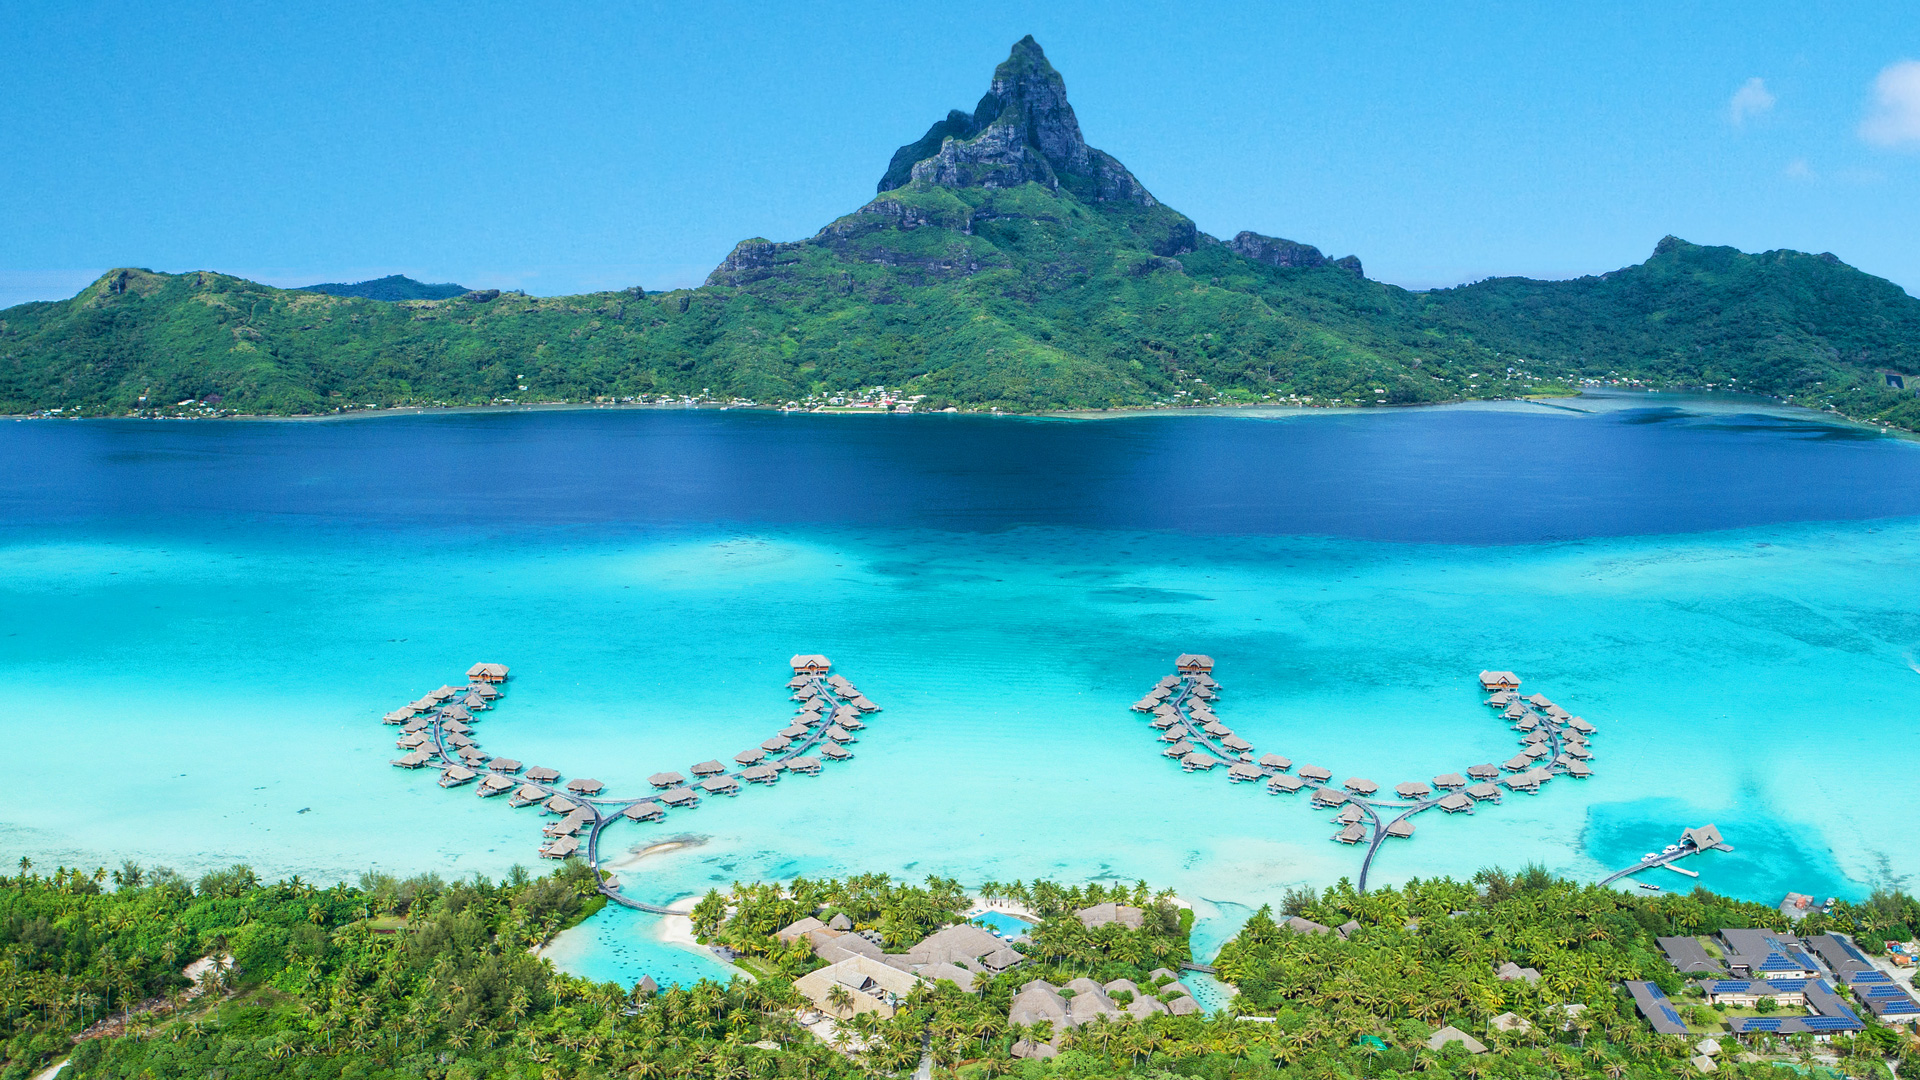 https://tahititourisme.ch/wp-content/uploads/2017/08/17-12-ICB-0115-1920px.jpg